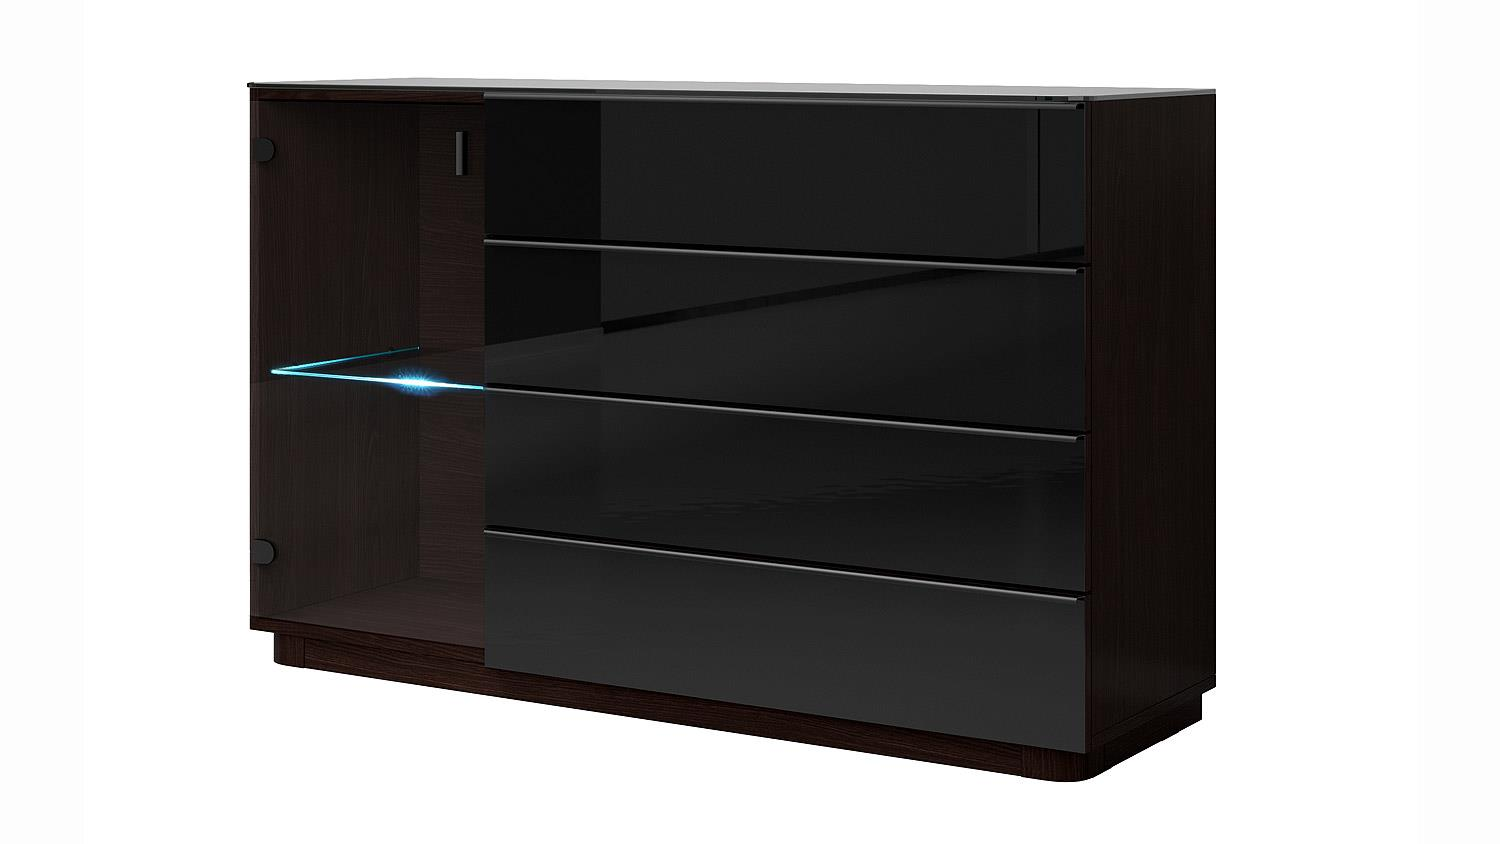 kommode togos wm glas schwarz und wenge inkl led. Black Bedroom Furniture Sets. Home Design Ideas